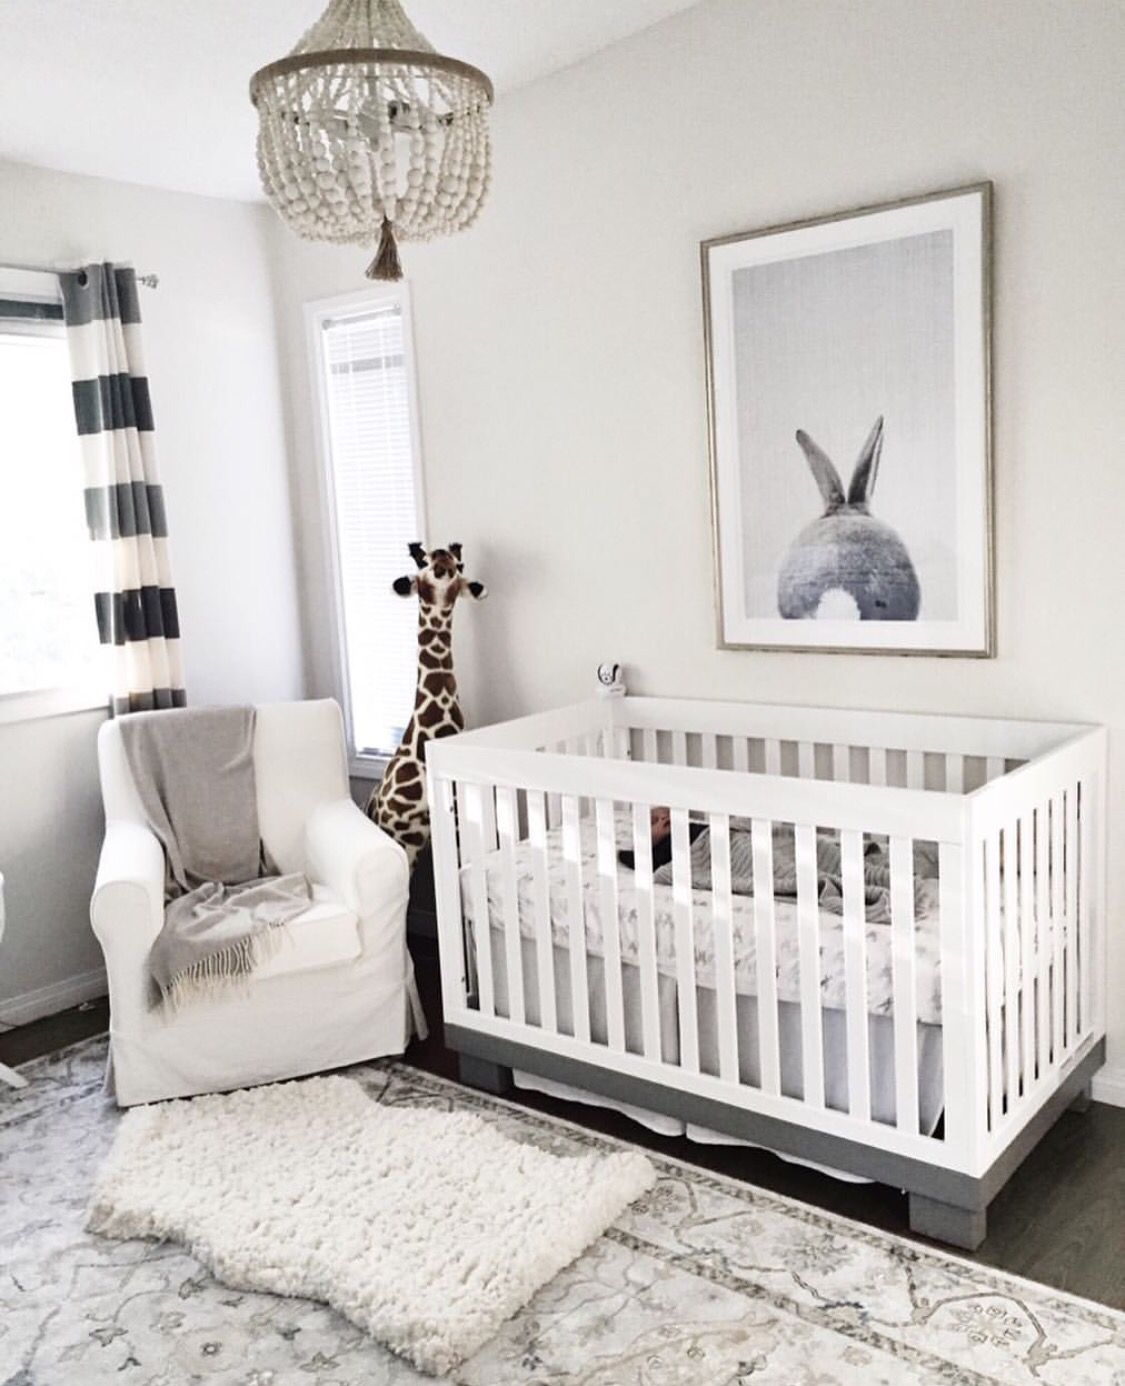 Baby Girl Nursery Decoration Ideas: All Gray And White For This Minimal Nursery